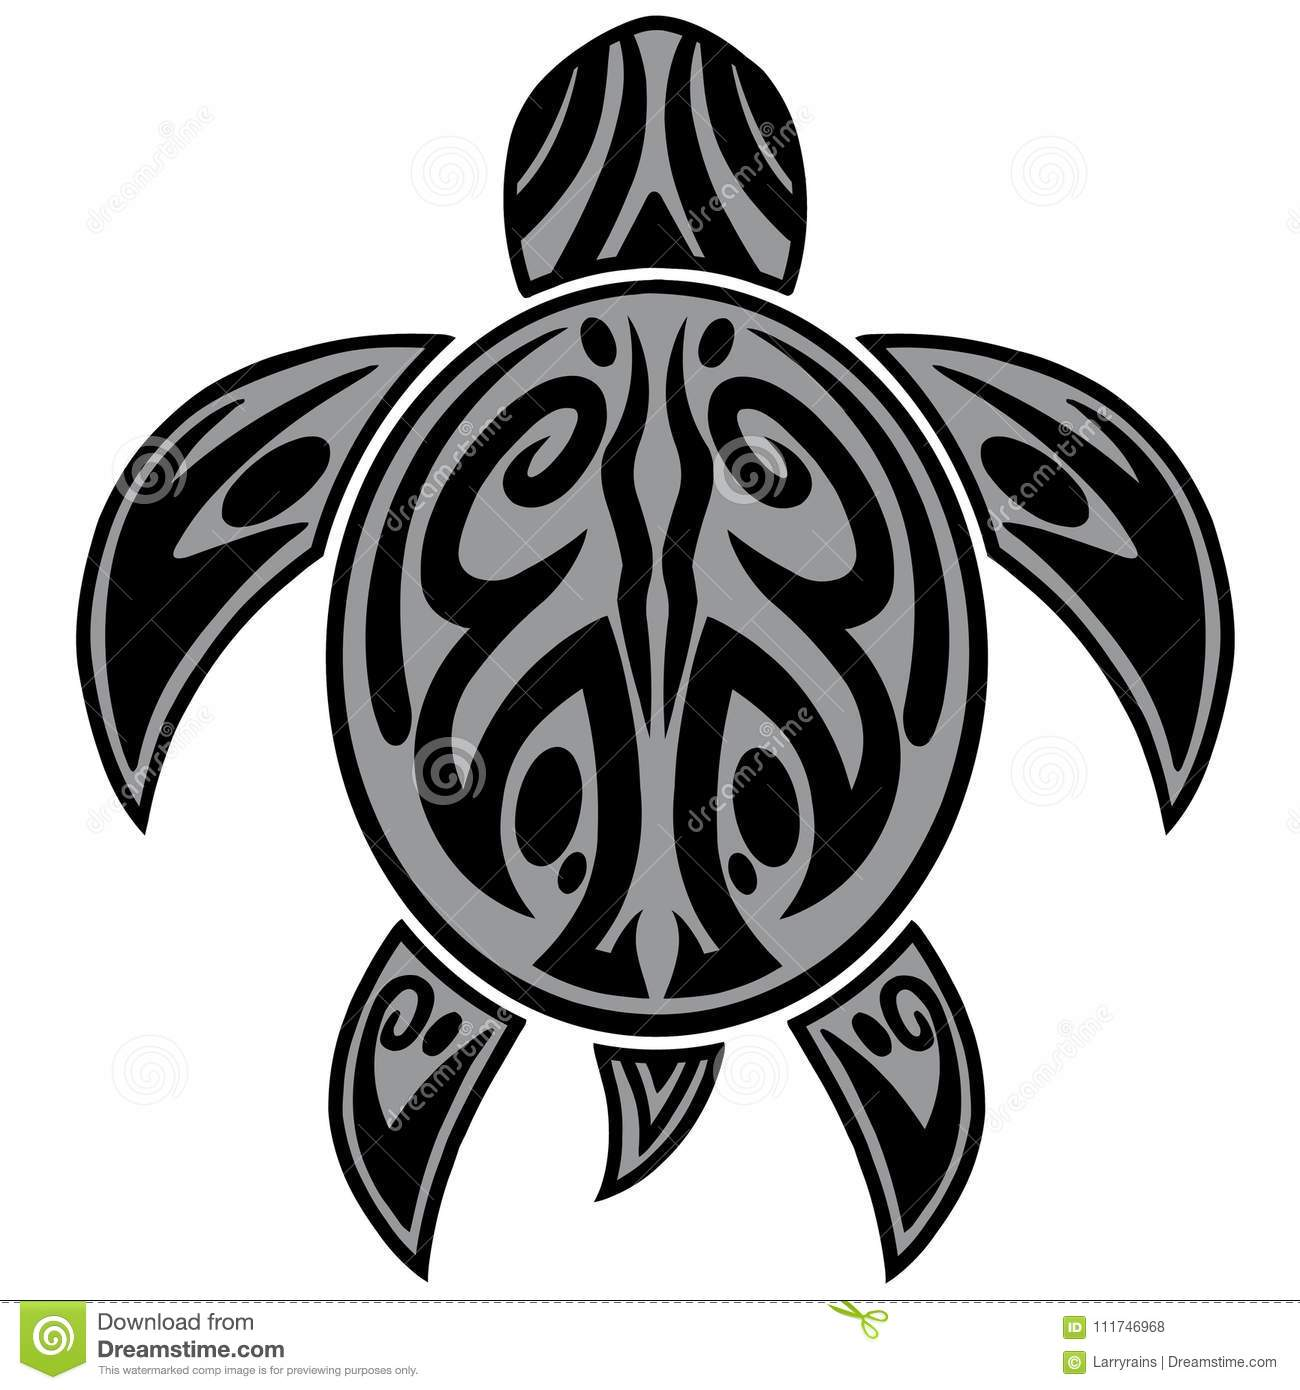 Sea Turtle Tribal Tattoo Illustration Stock Vector Illustration Of